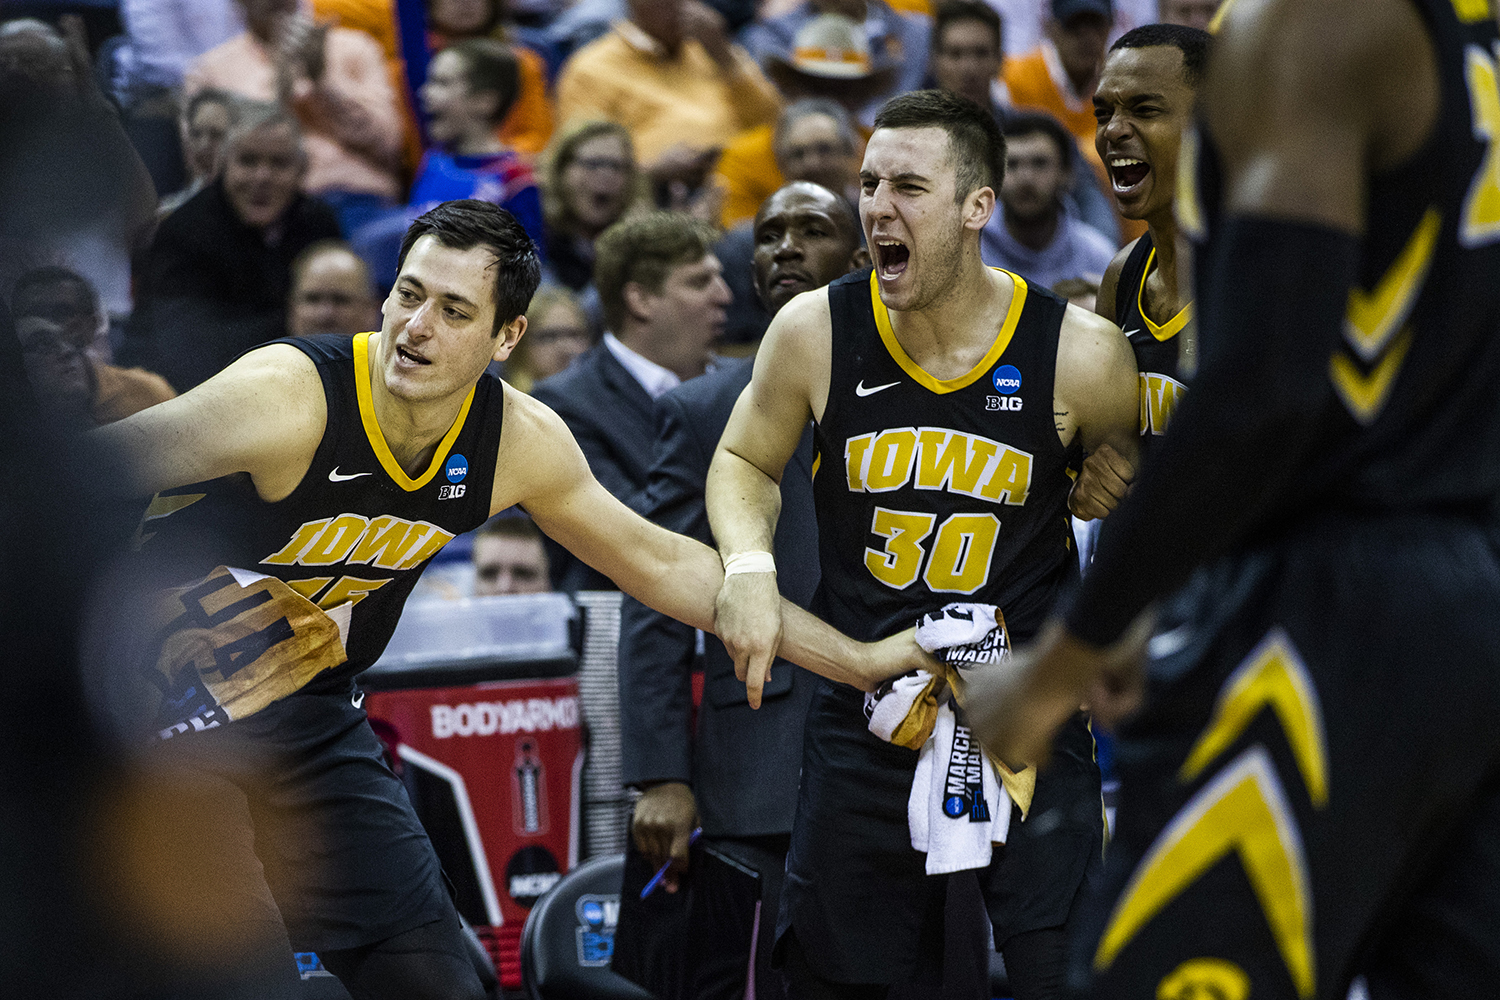 Iowa players cheer during the NCAA game against Cincinnati at Nationwide Arena on Friday, March 22, 2019. The Hawkeyes defeated the Bearcats 79-72.